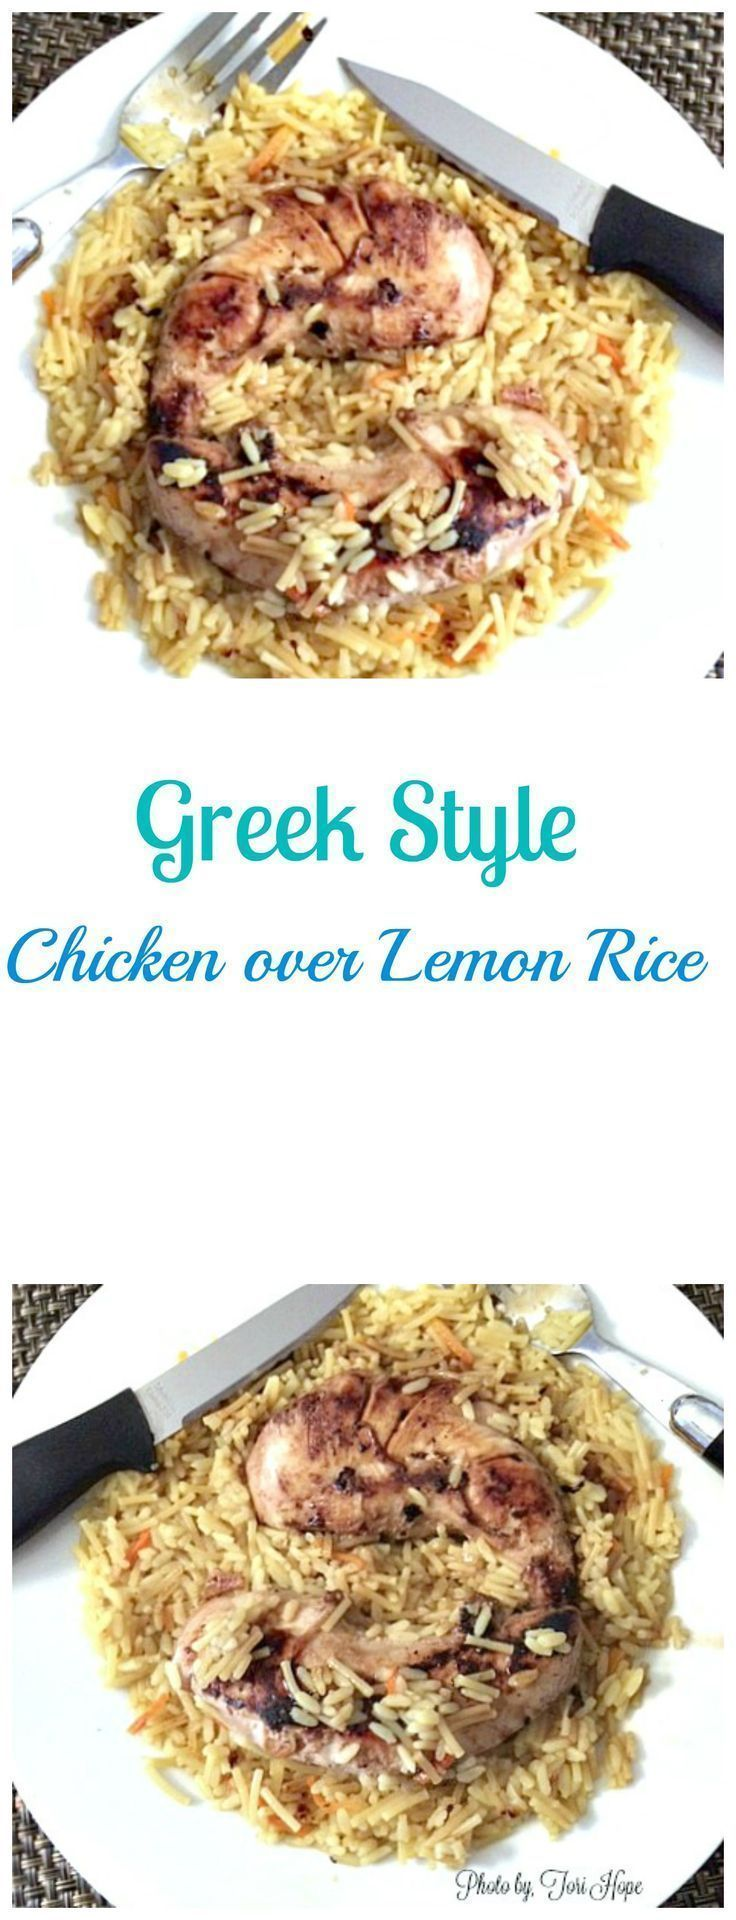 Greek Style Chicken over Lemon Rice - What a College Girl Eats - #greeklemonrice Greek Style Chicken over Lemon Rice - What a College Girl Eats - #greeklemonrice Greek Style Chicken over Lemon Rice - What a College Girl Eats - #greeklemonrice Greek Style Chicken over Lemon Rice - What a College Girl Eats - #greeklemonrice Greek Style Chicken over Lemon Rice - What a College Girl Eats - #greeklemonrice Greek Style Chicken over Lemon Rice - What a College Girl Eats - #greeklemonrice Greek Style Ch #greeklemonrice